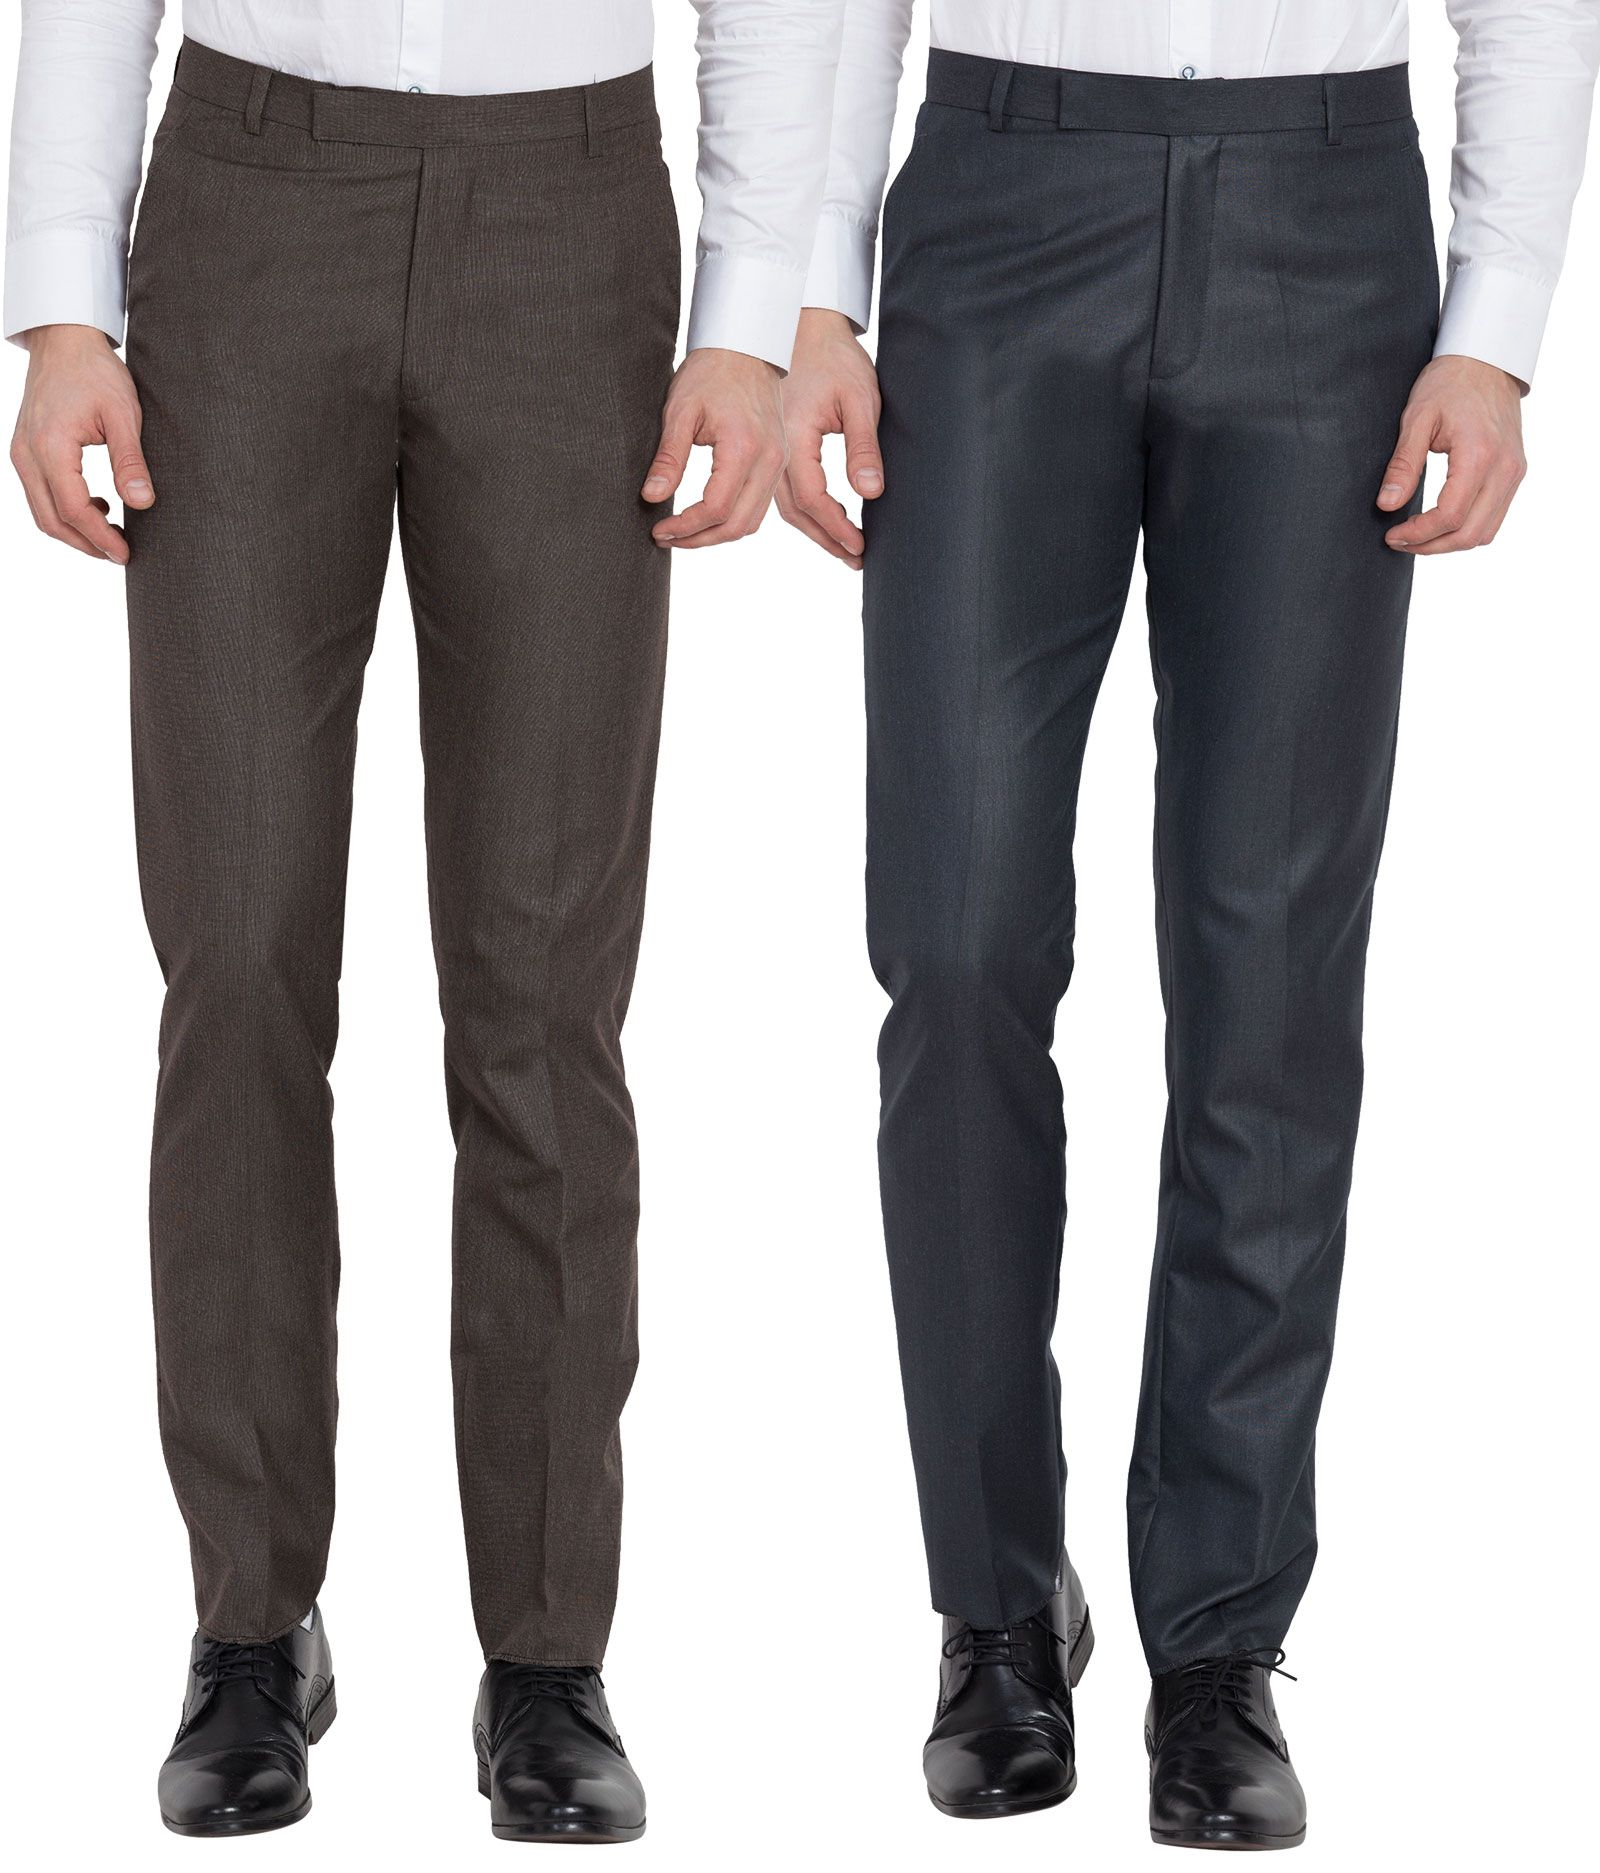 Cliths Multicolored Slim -Fit Trousers